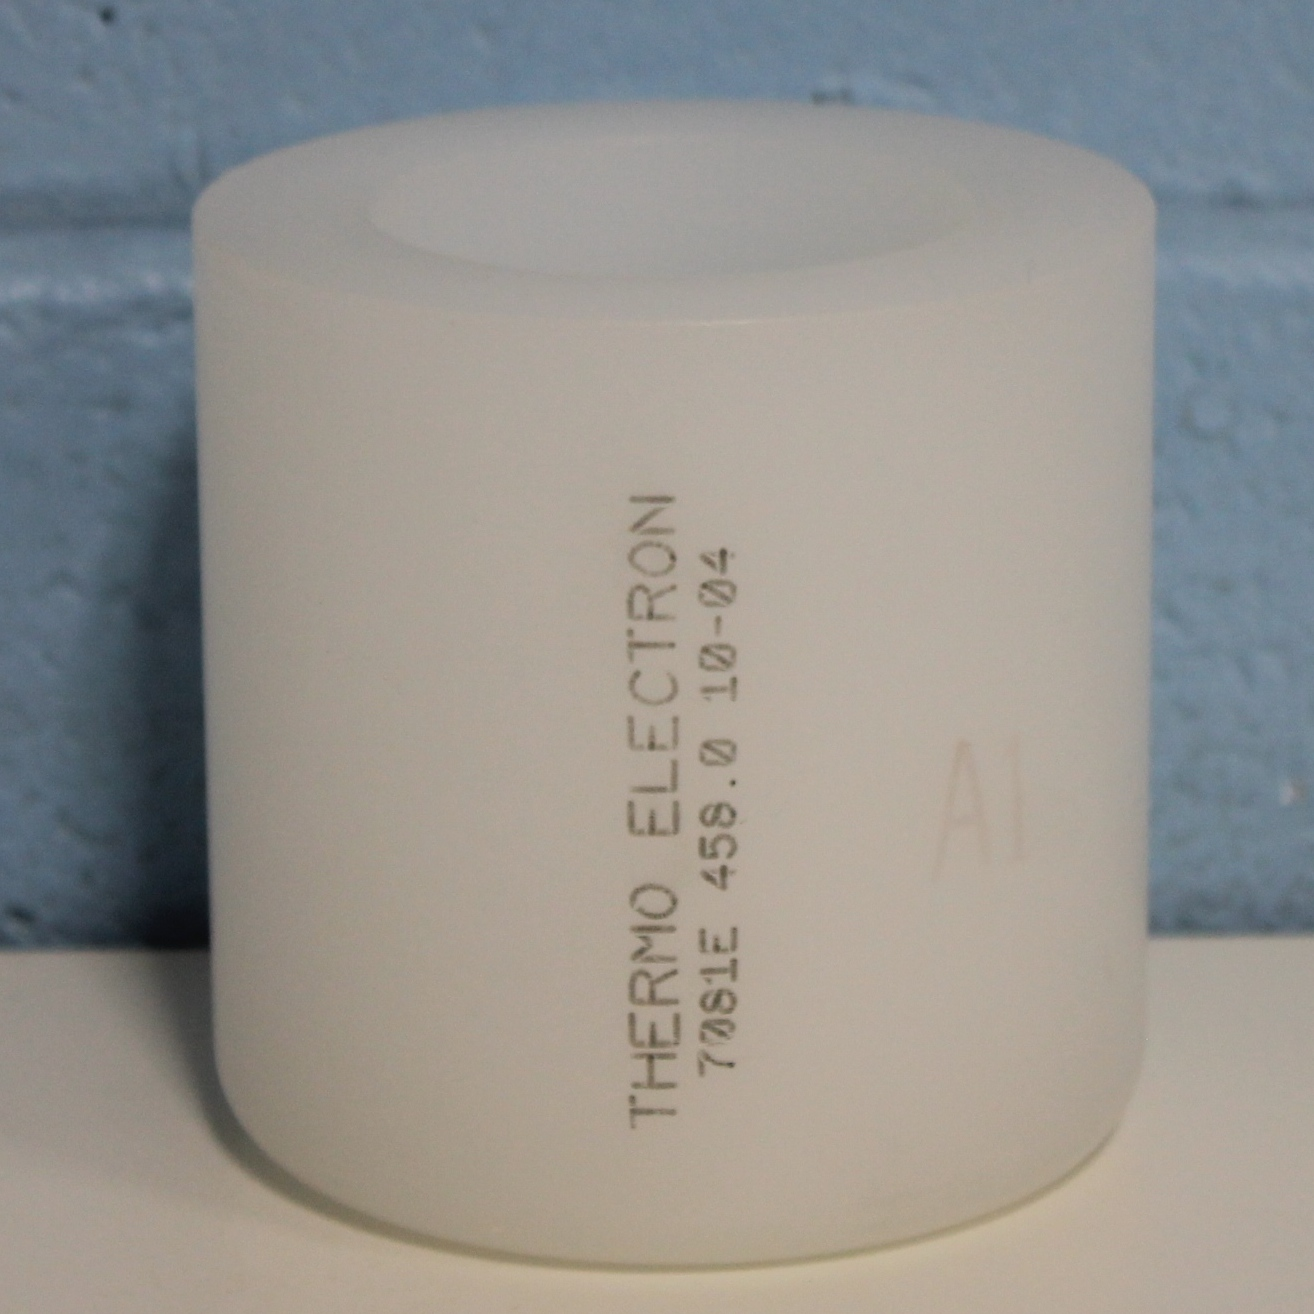 Thermo Electron Corporation Aerocarrier Adapter 1 x 250 ml Conical (unsealed) CAT No. 7081E Image